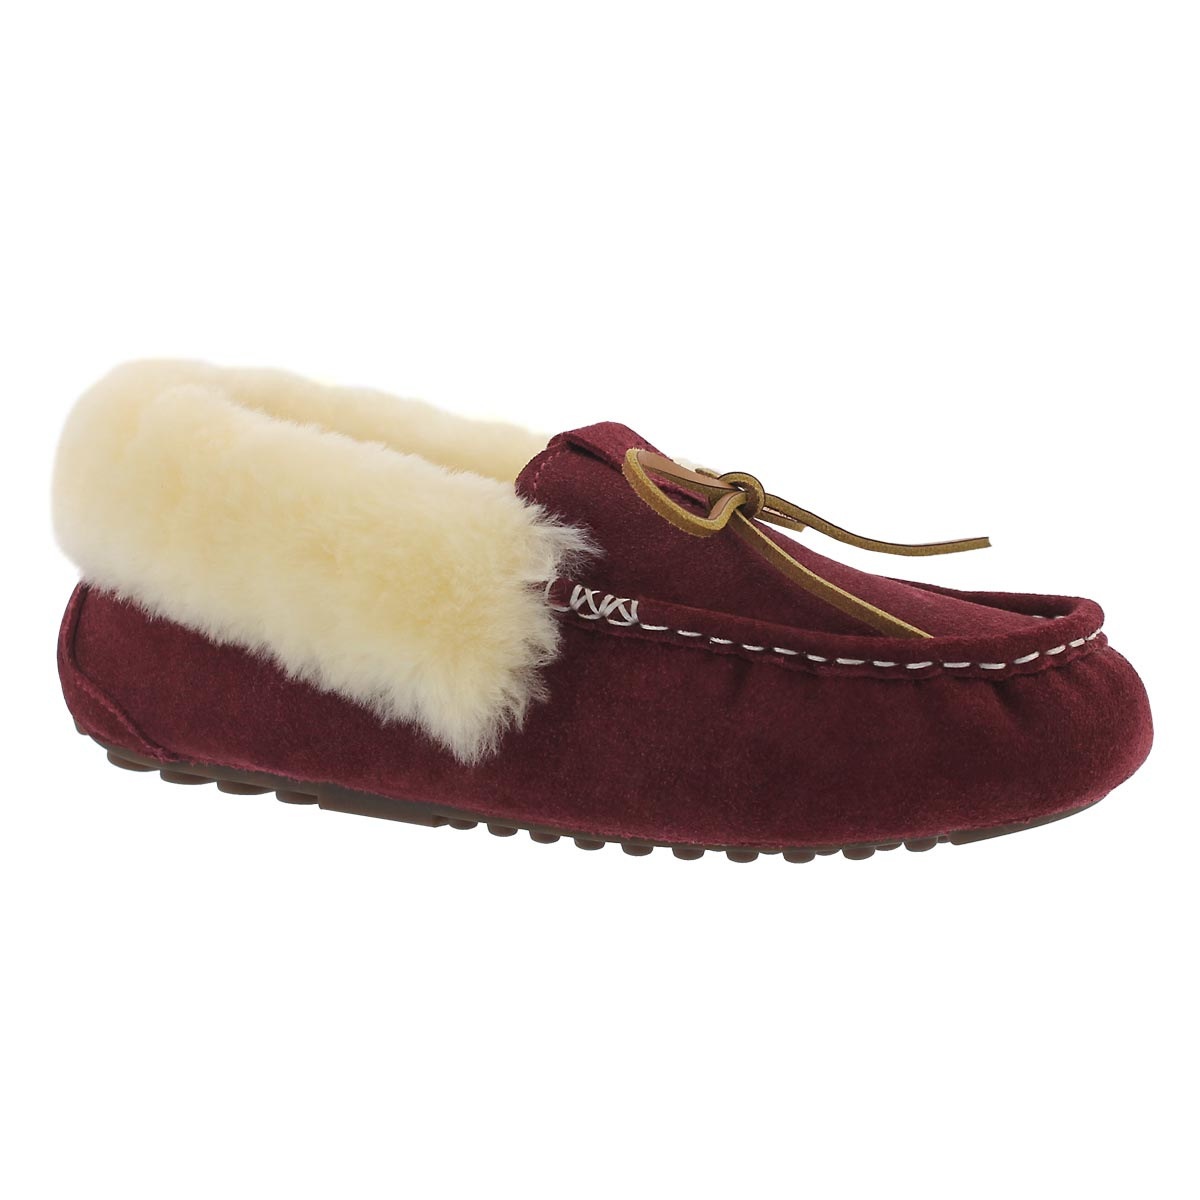 Women's PATTY shearling lined suede moccasins